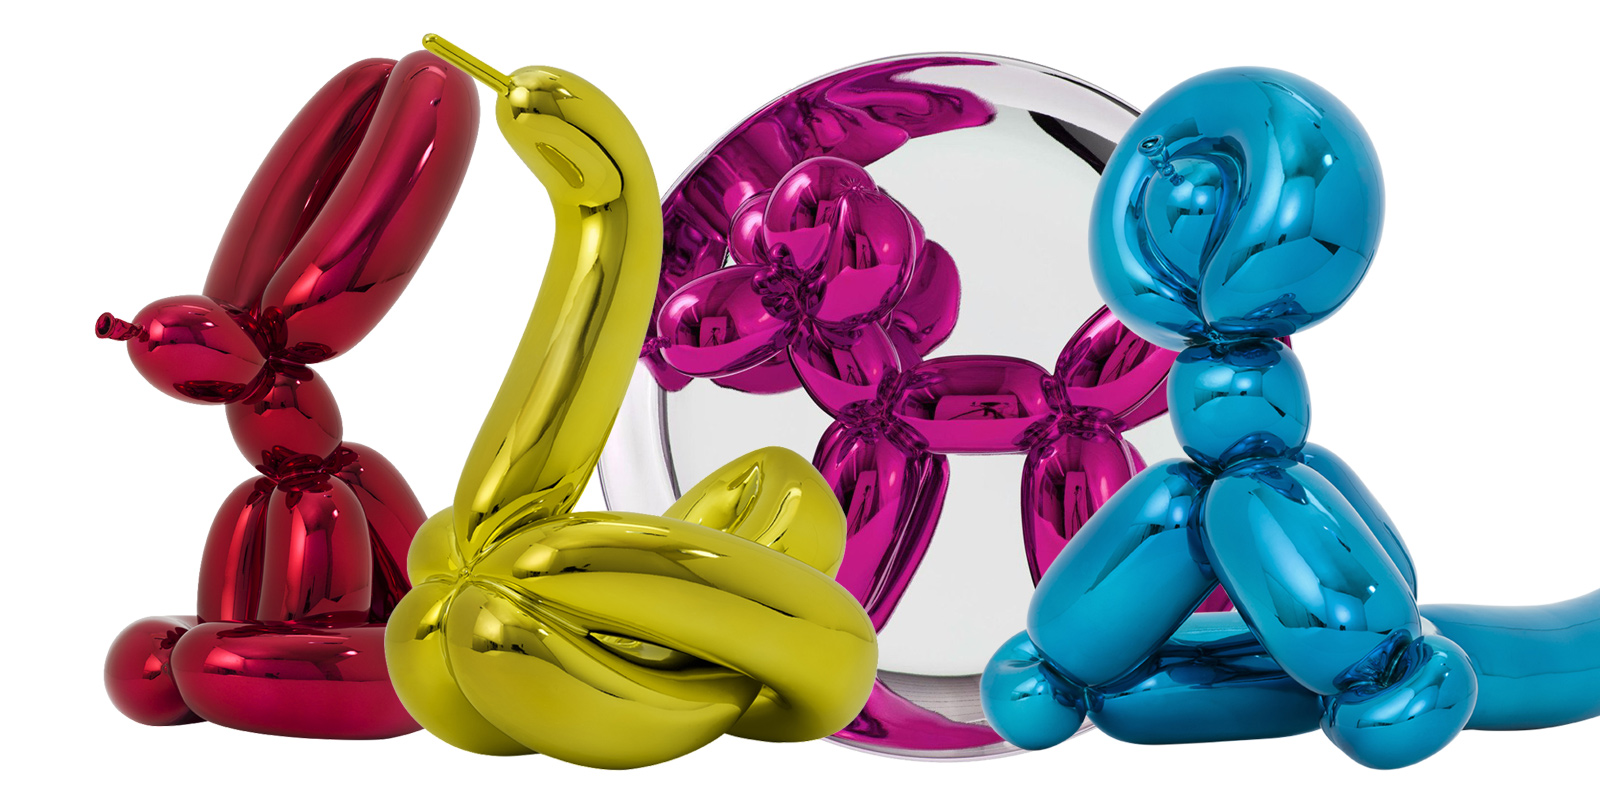 balloons by jeff koons - artist presented by premium modern art